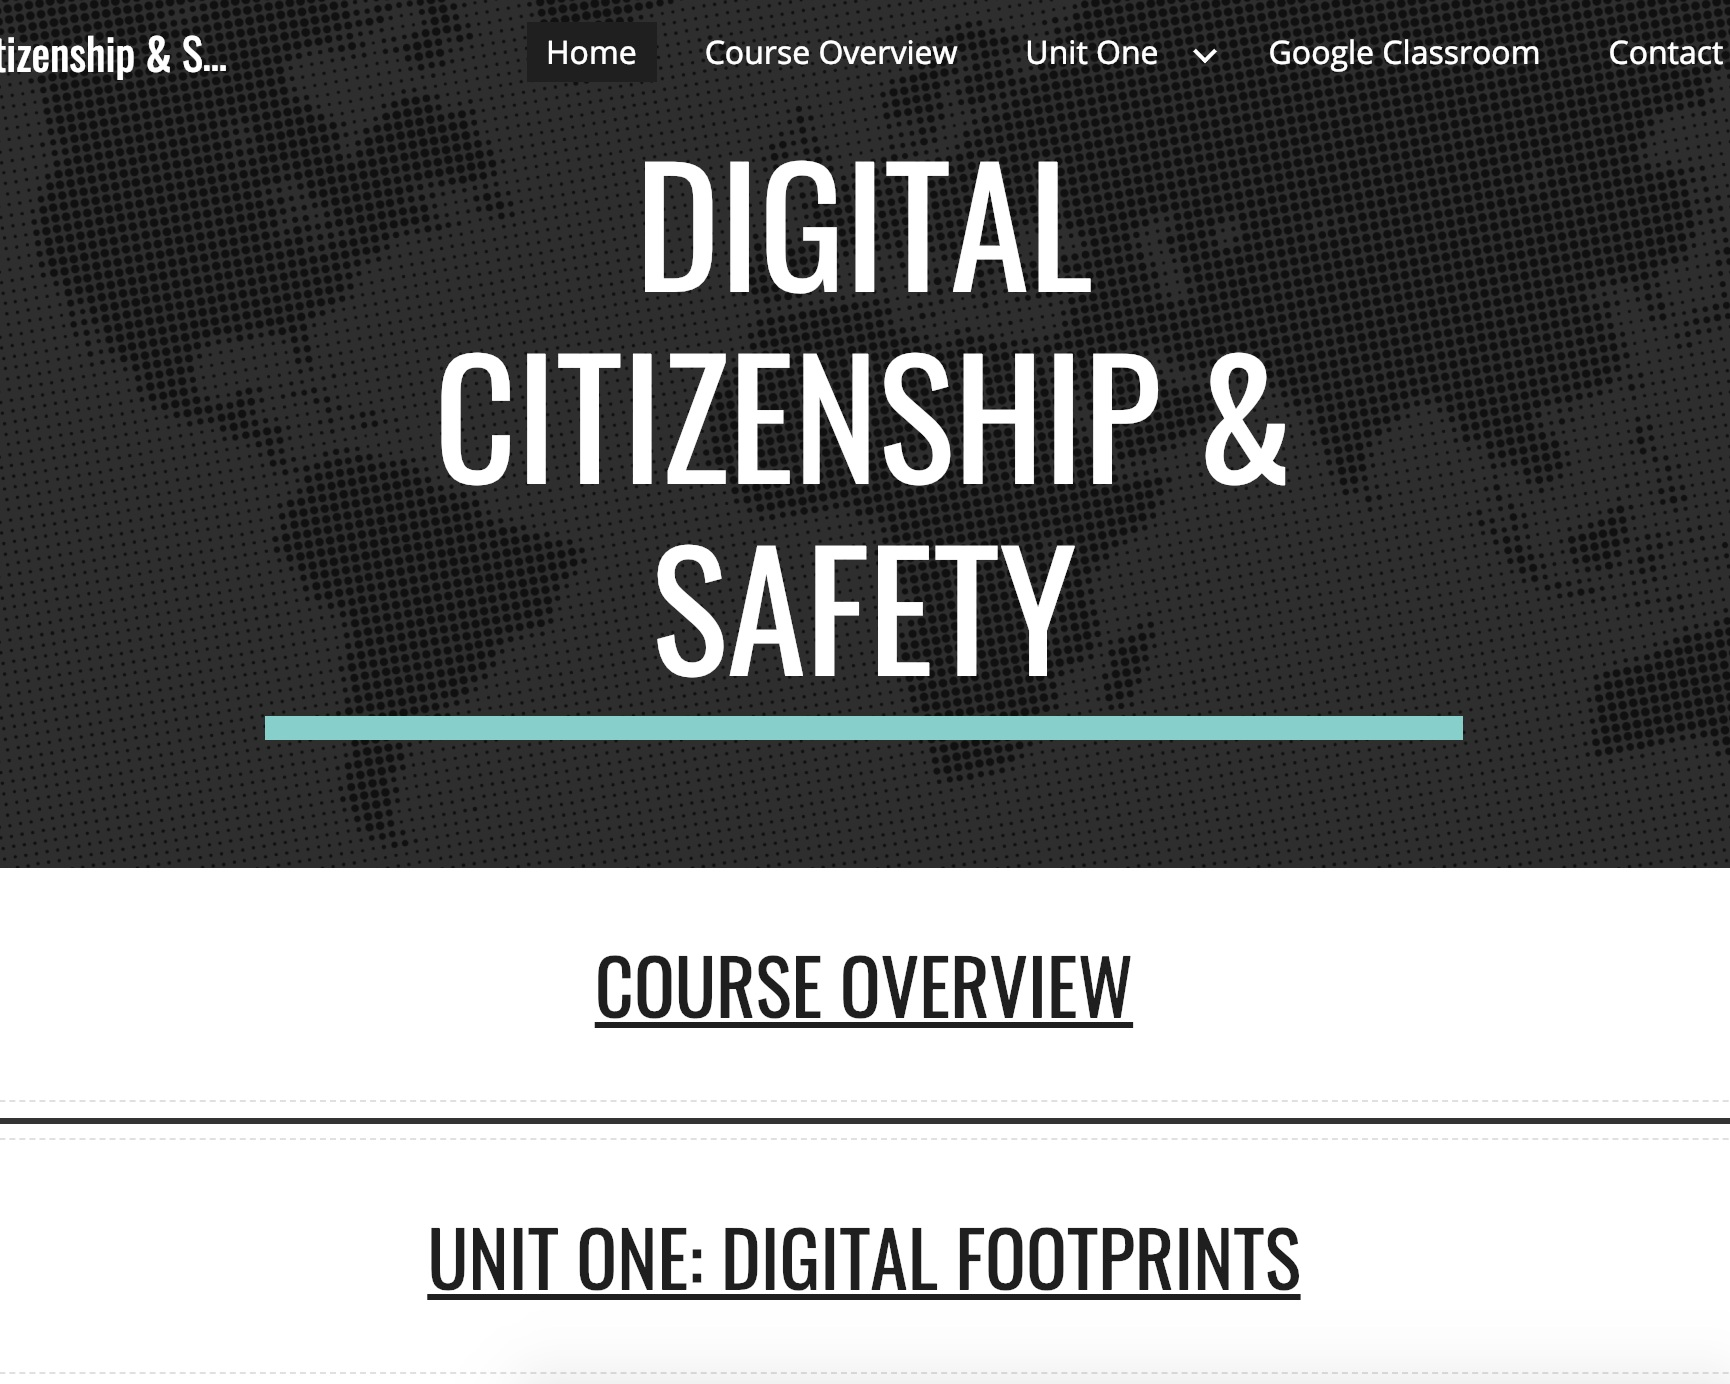 online course: Digital Citizenship & Safety - This online course module was developed using Google Sites and Google Classroom on the topic of Digital Citizenship and Safety. It showcases evidence of effective UX design (user experience), unit and lesson development, integration of multimedia learning theory, and content creation. This work demonstrates my ability to utilize multimodal content to design effective lessons that align to a wealth of educational standards and learning theories.